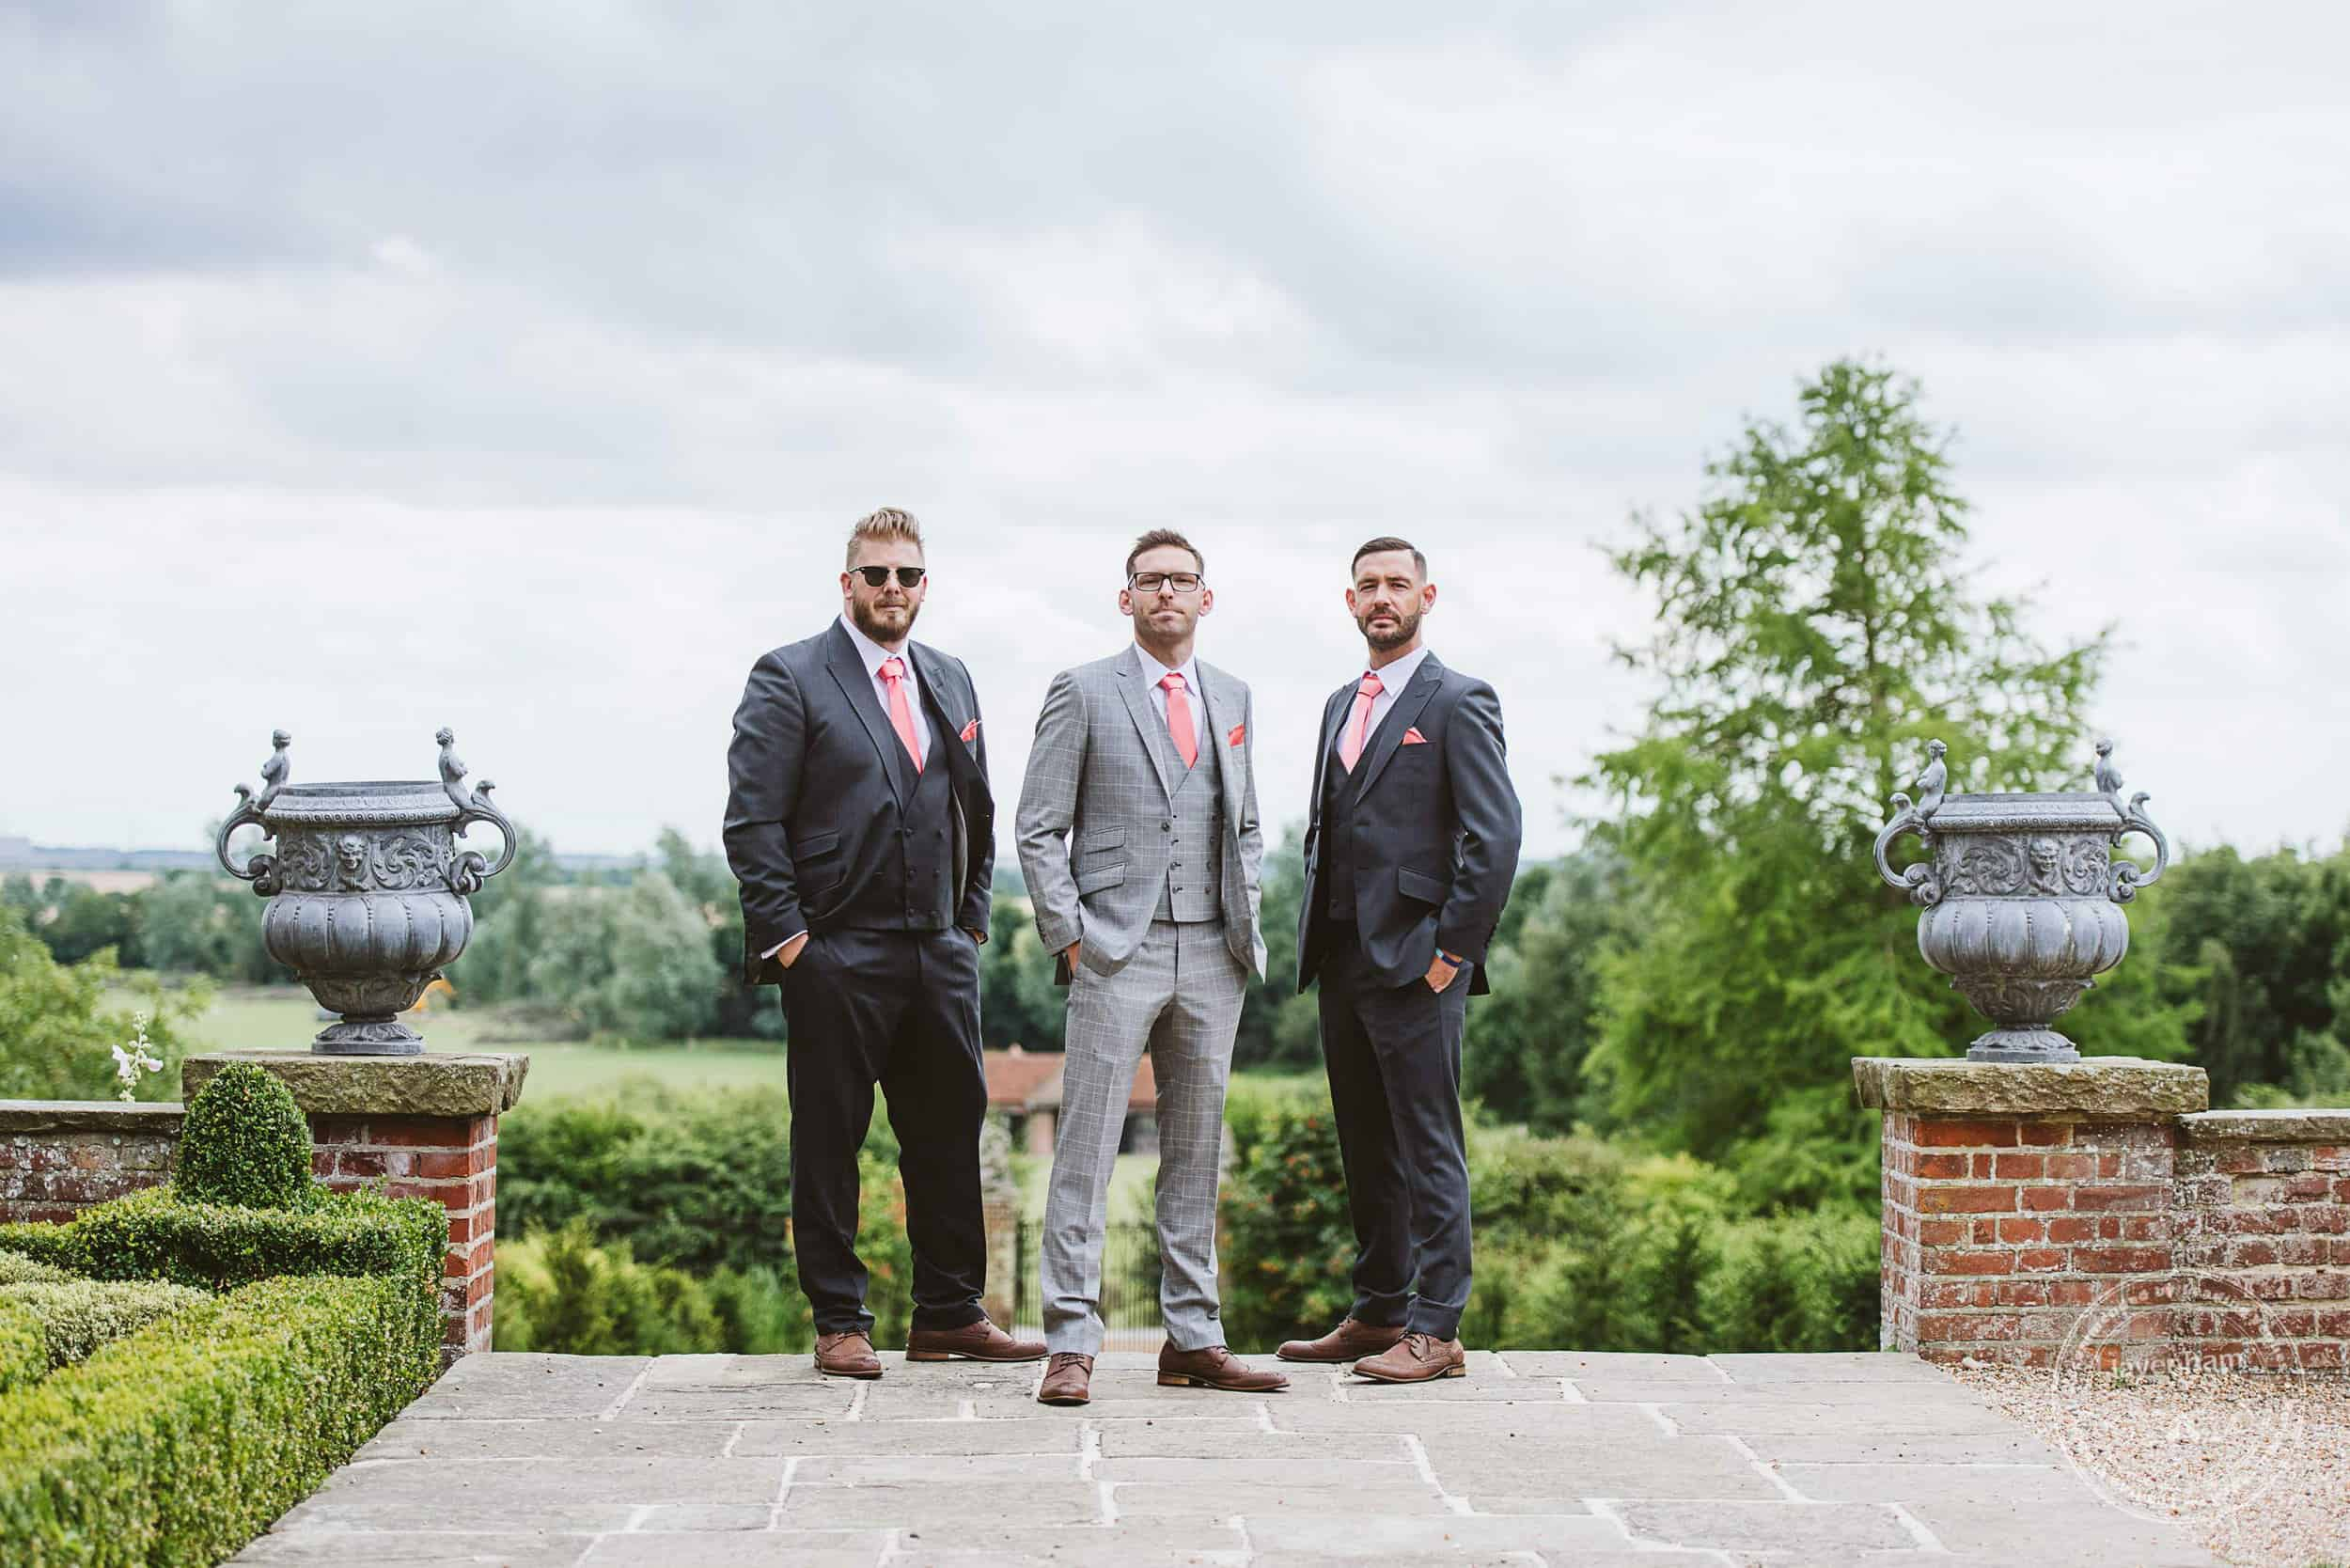 140717 Layer Marney Wedding Photography by Lavenham Photographic 022